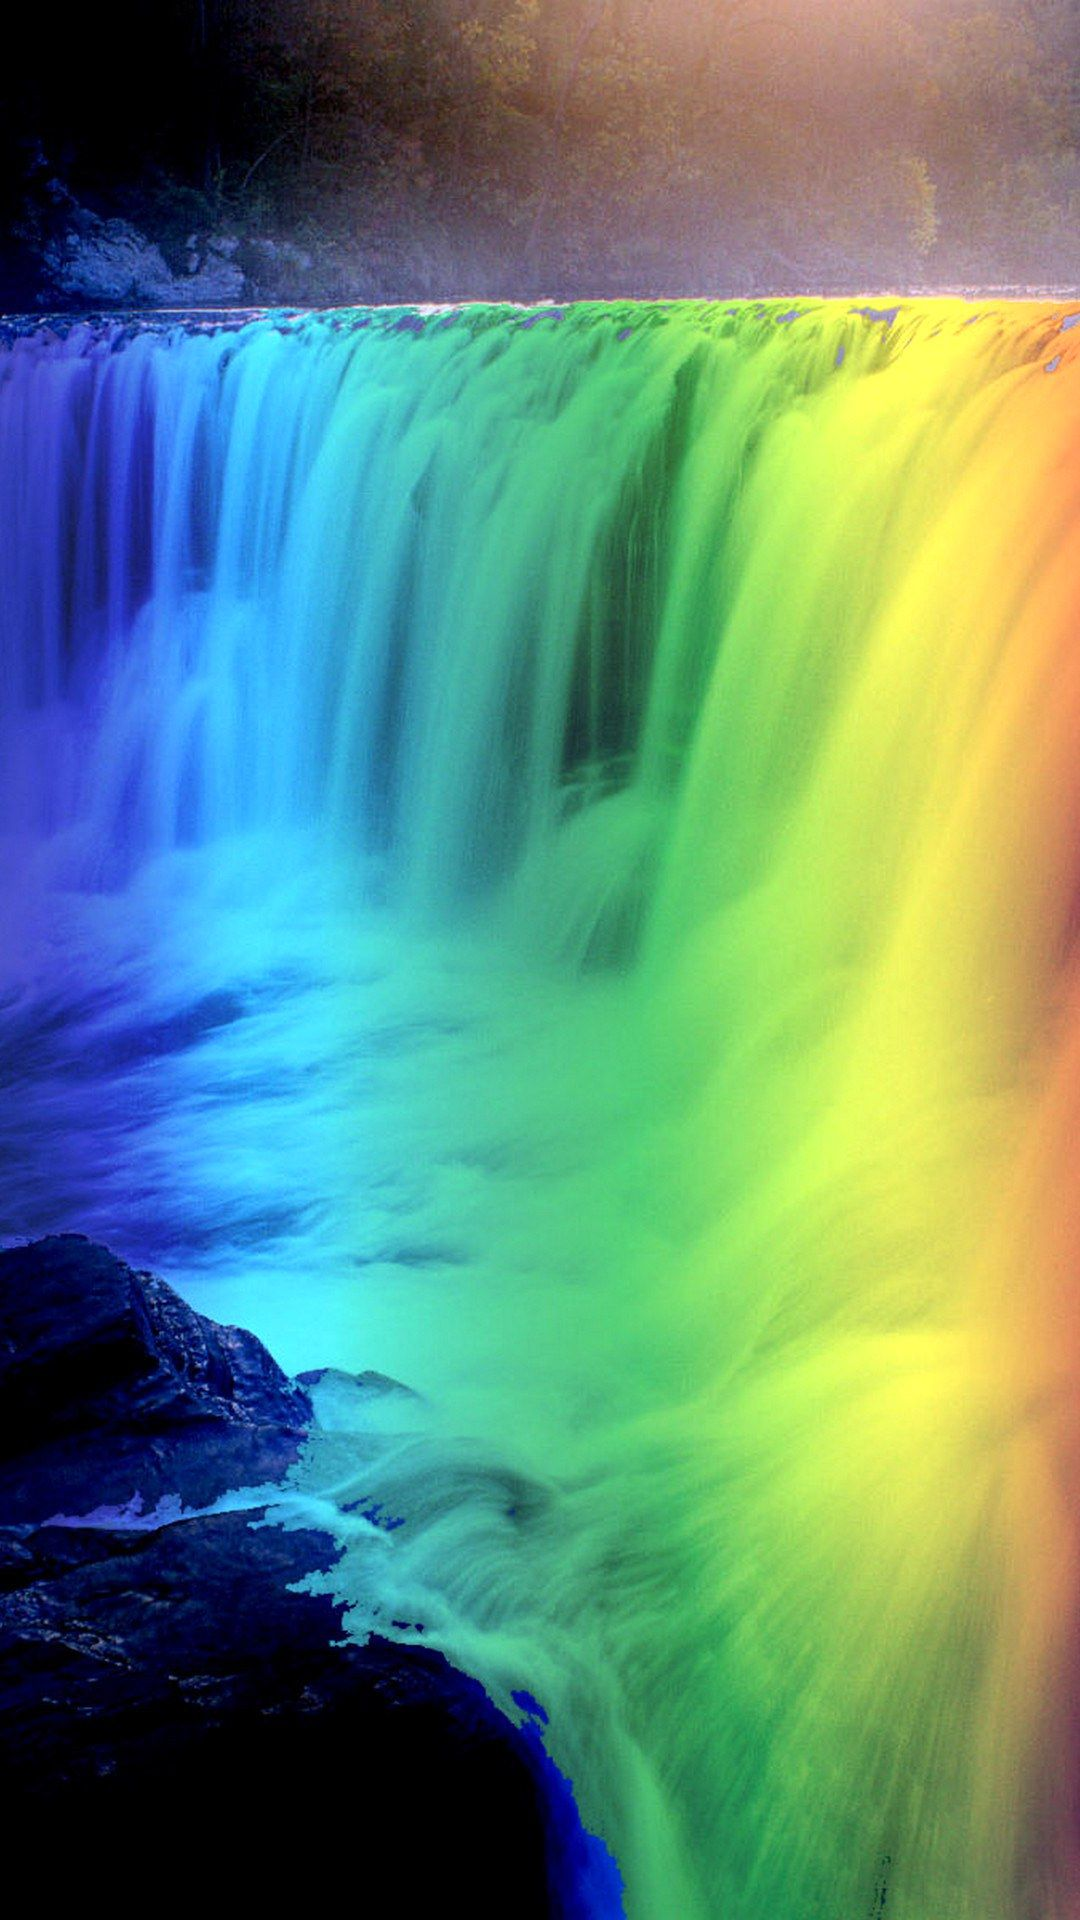 Rainbow Iphone wallpaper Hd in 2020 Cute home screen